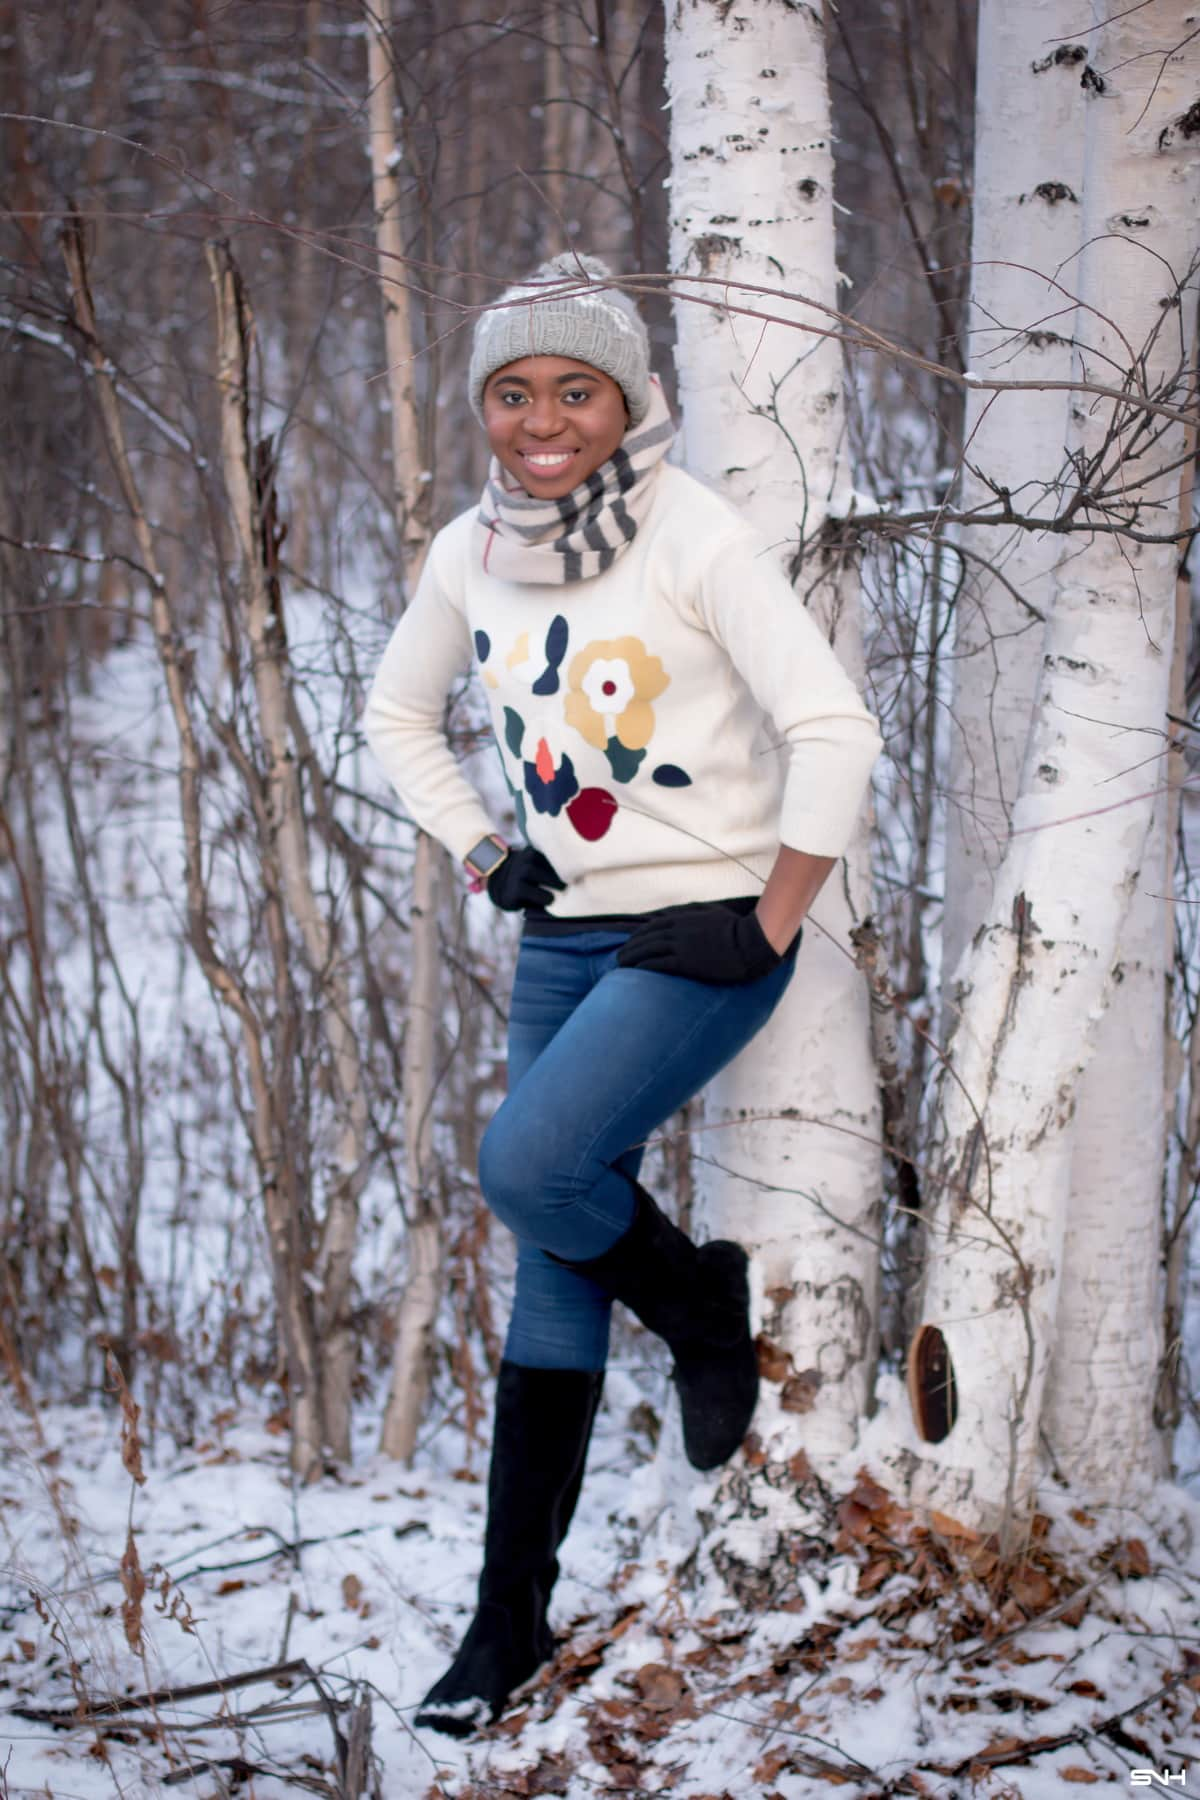 #uglychristmassweater A roundup of the best ugly Christmas sweaters for women to rock in 2019. And guess what? These cute ugly Xmas sweaters are all under $40! Now's the best time to scoop these funny holiday sweaters before they sell out or become crazy expensive! #christmassweaters #sweatersforwomen